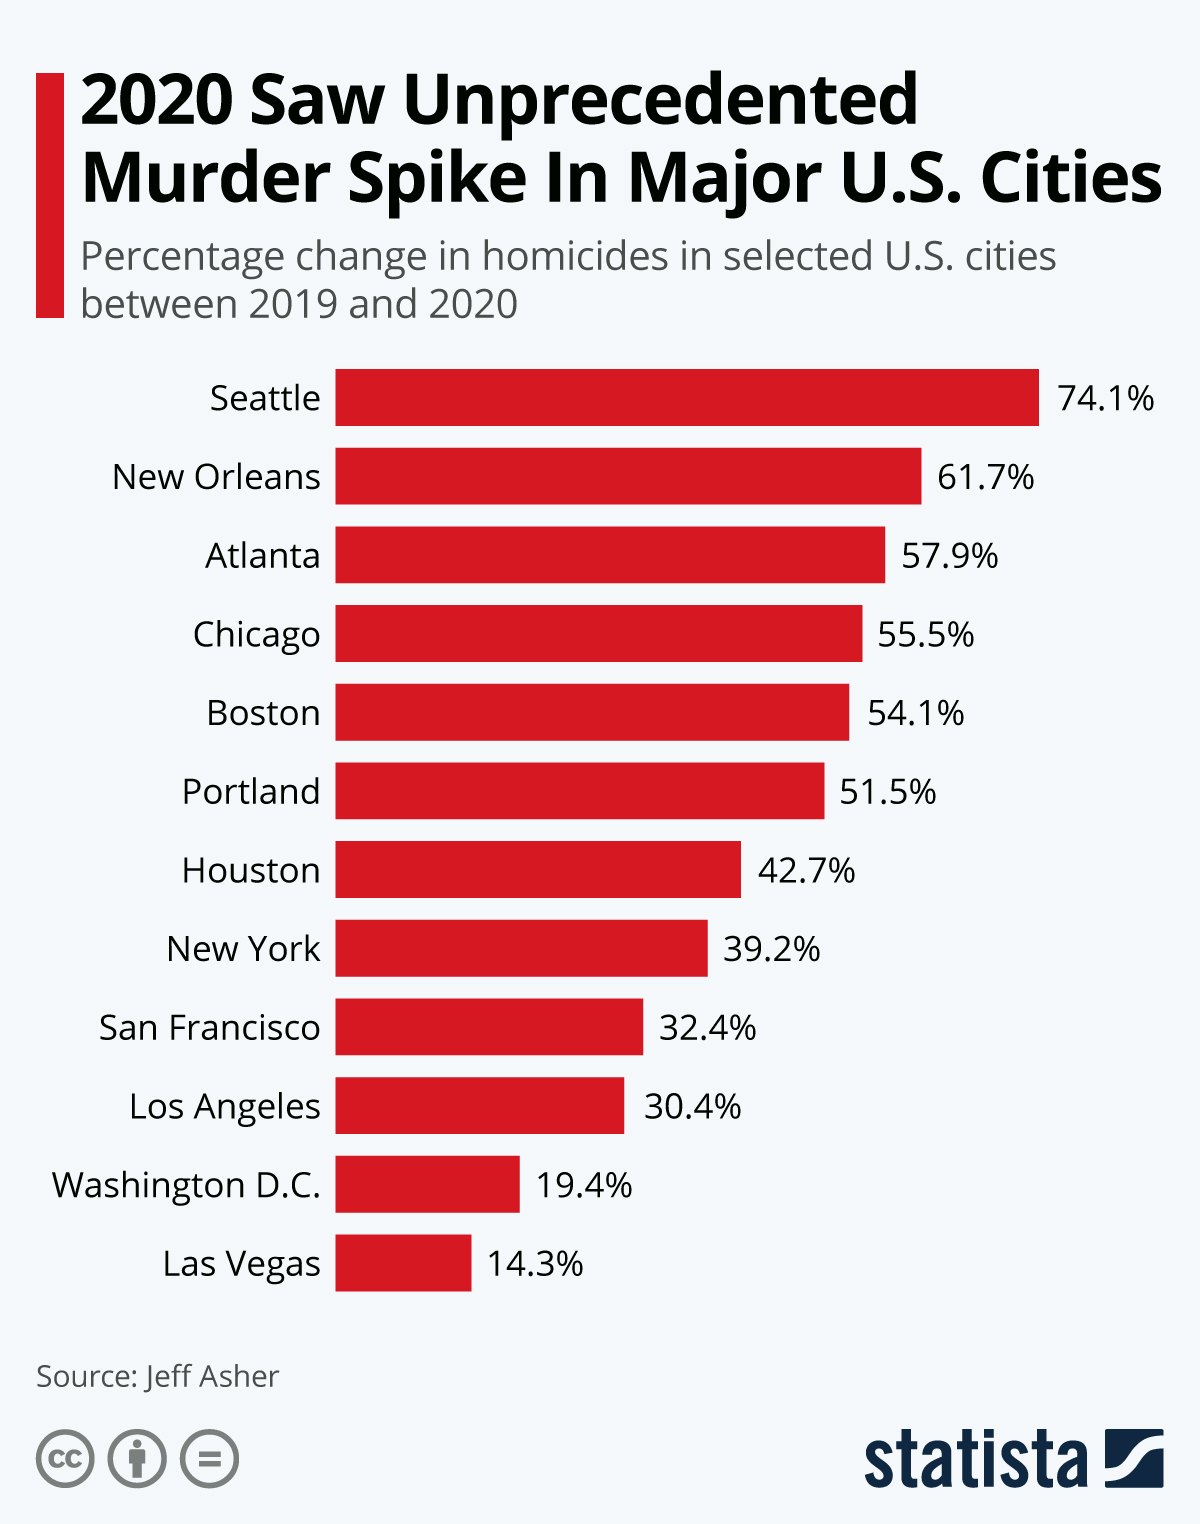 2020 Saw Unprecedented Murder Spike In Major U.S. Cities